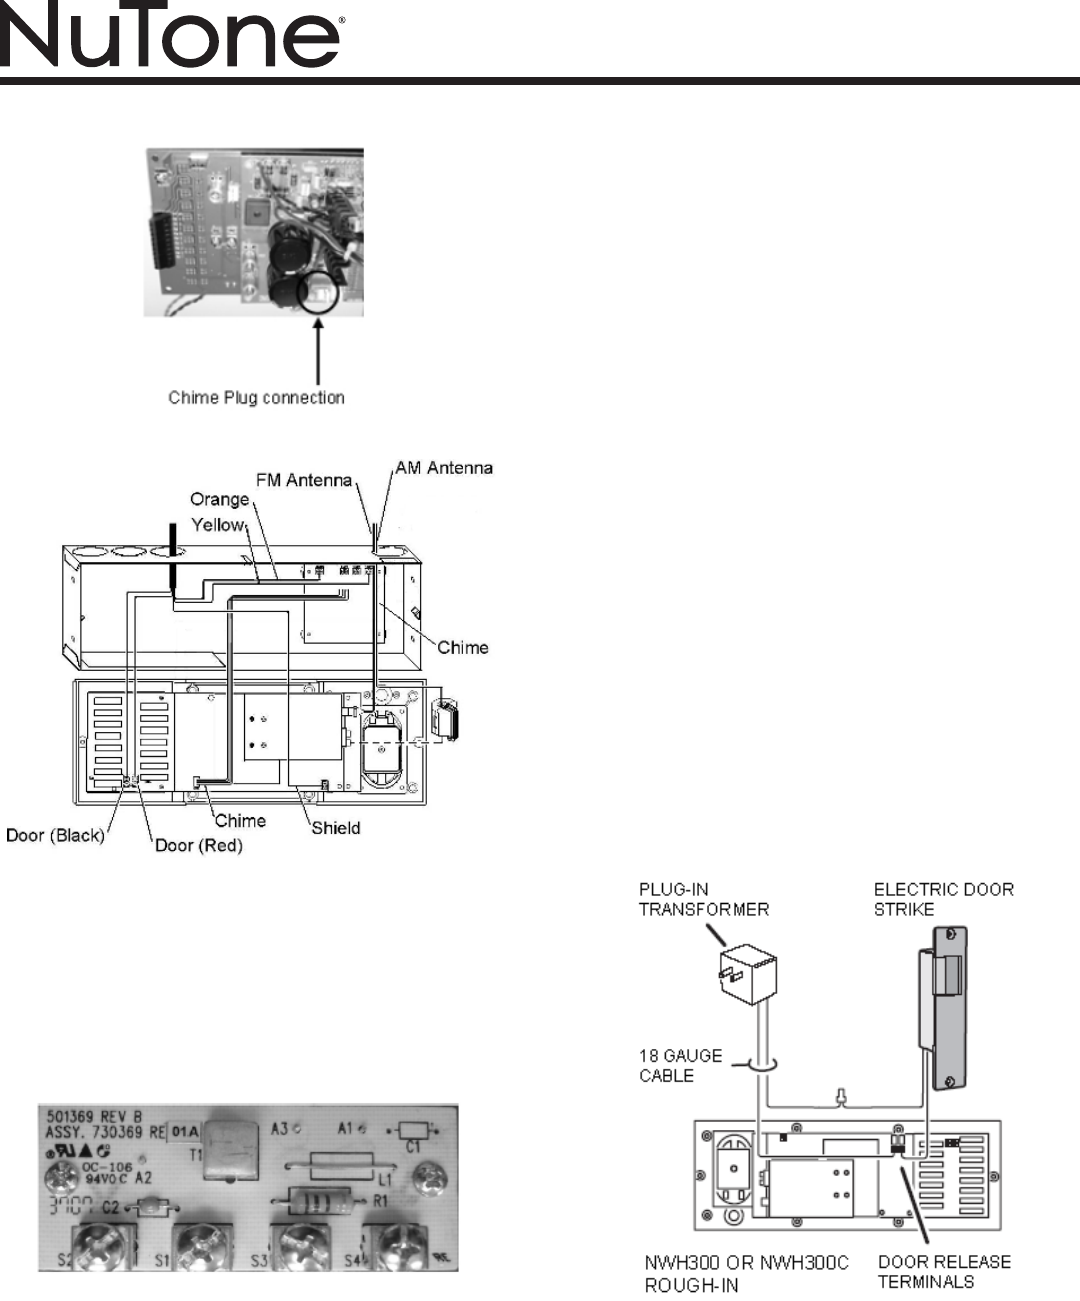 20fa4ffd 8599 4b48 ace9 72b305a18e72 bg7 page 7 of nutone intercom system nm100wh user guide wiring diagram for nutone intercom at n-0.co